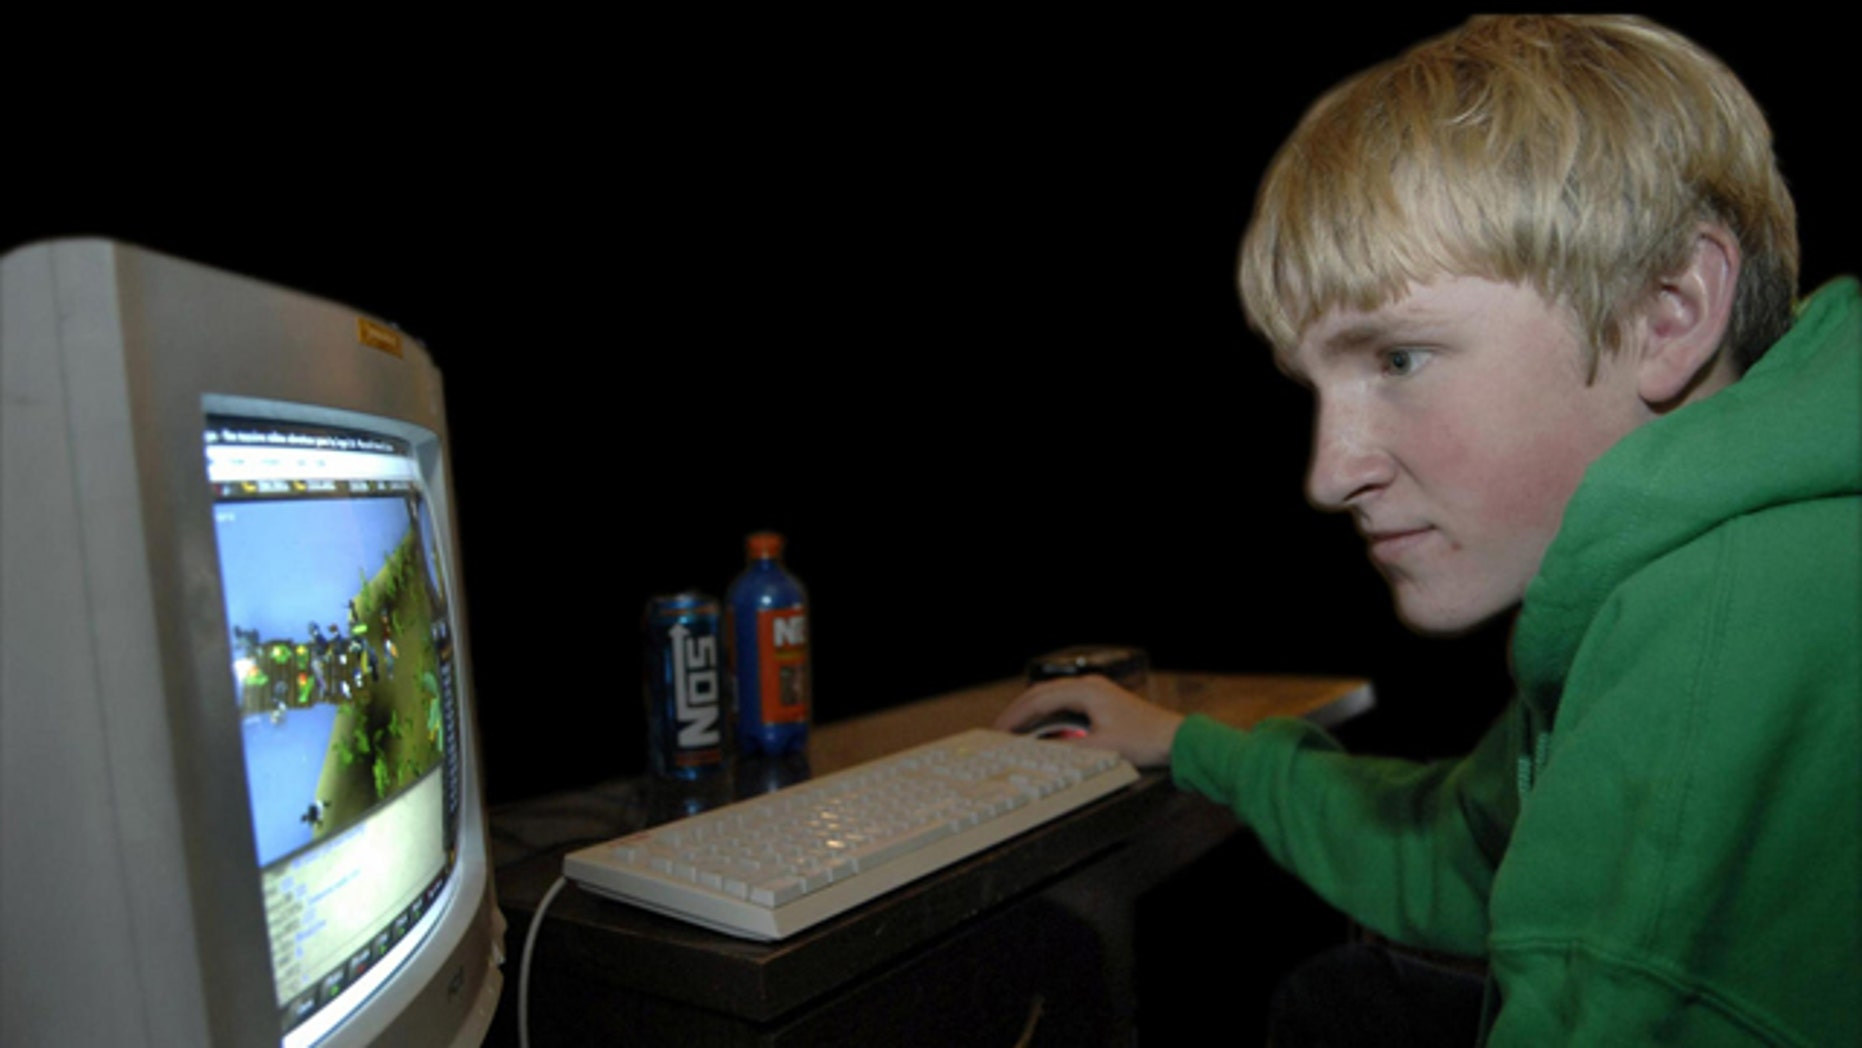 Studies show the incidence of rickets, a disease previously linked with poverty or malnutrition, is increasing -- and may be due to computer gaming and TV.